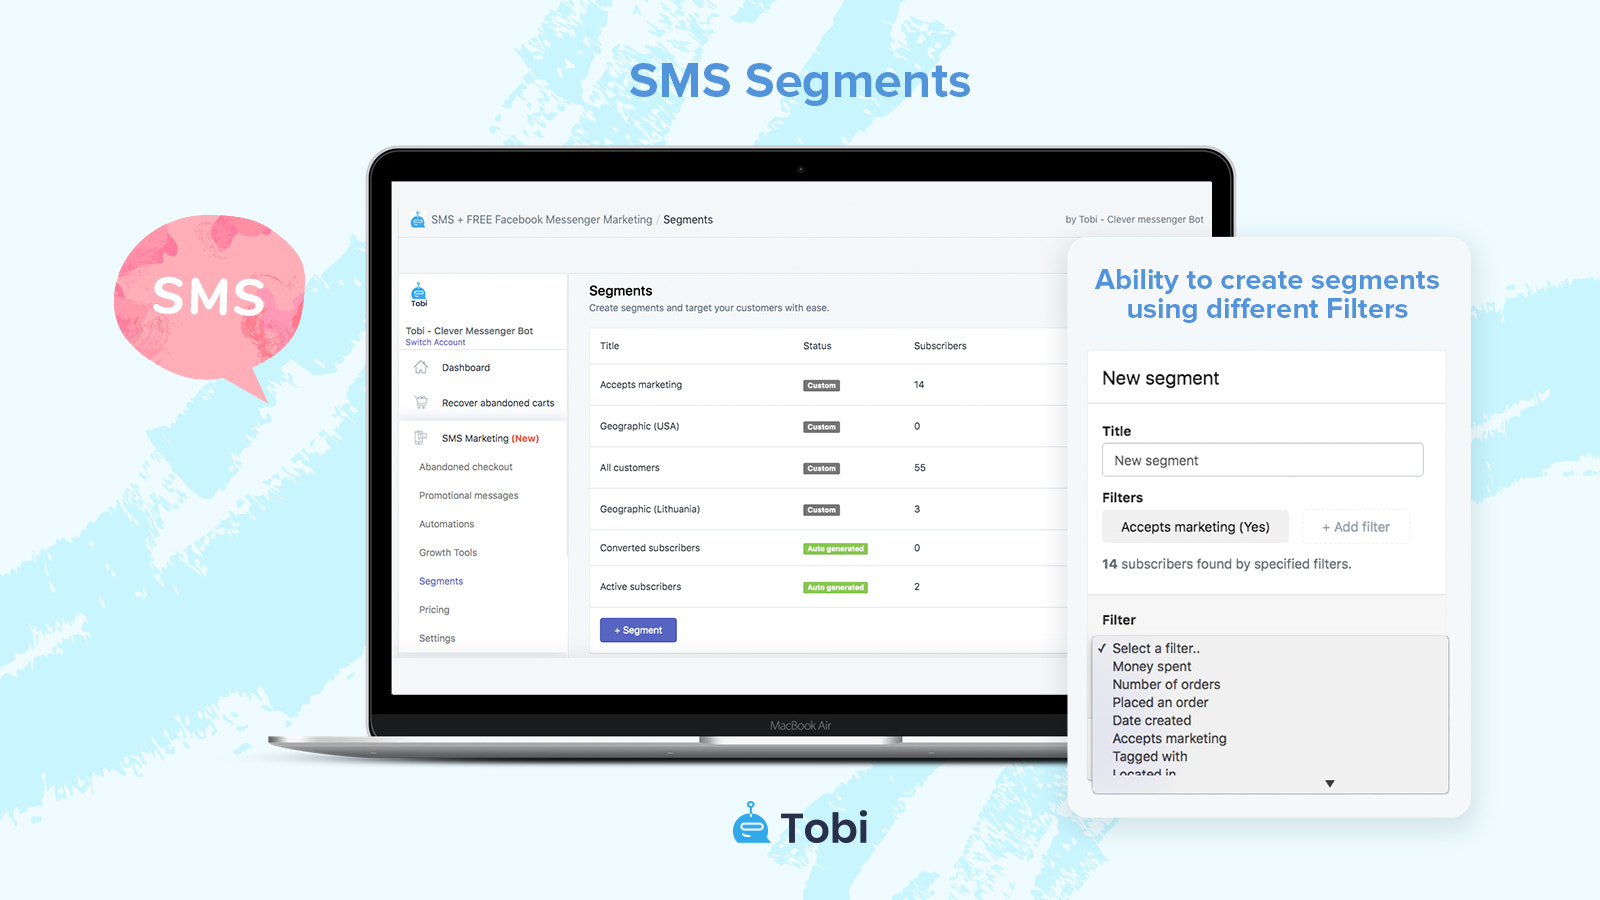 SMS Campaigns Segmentation having different filters